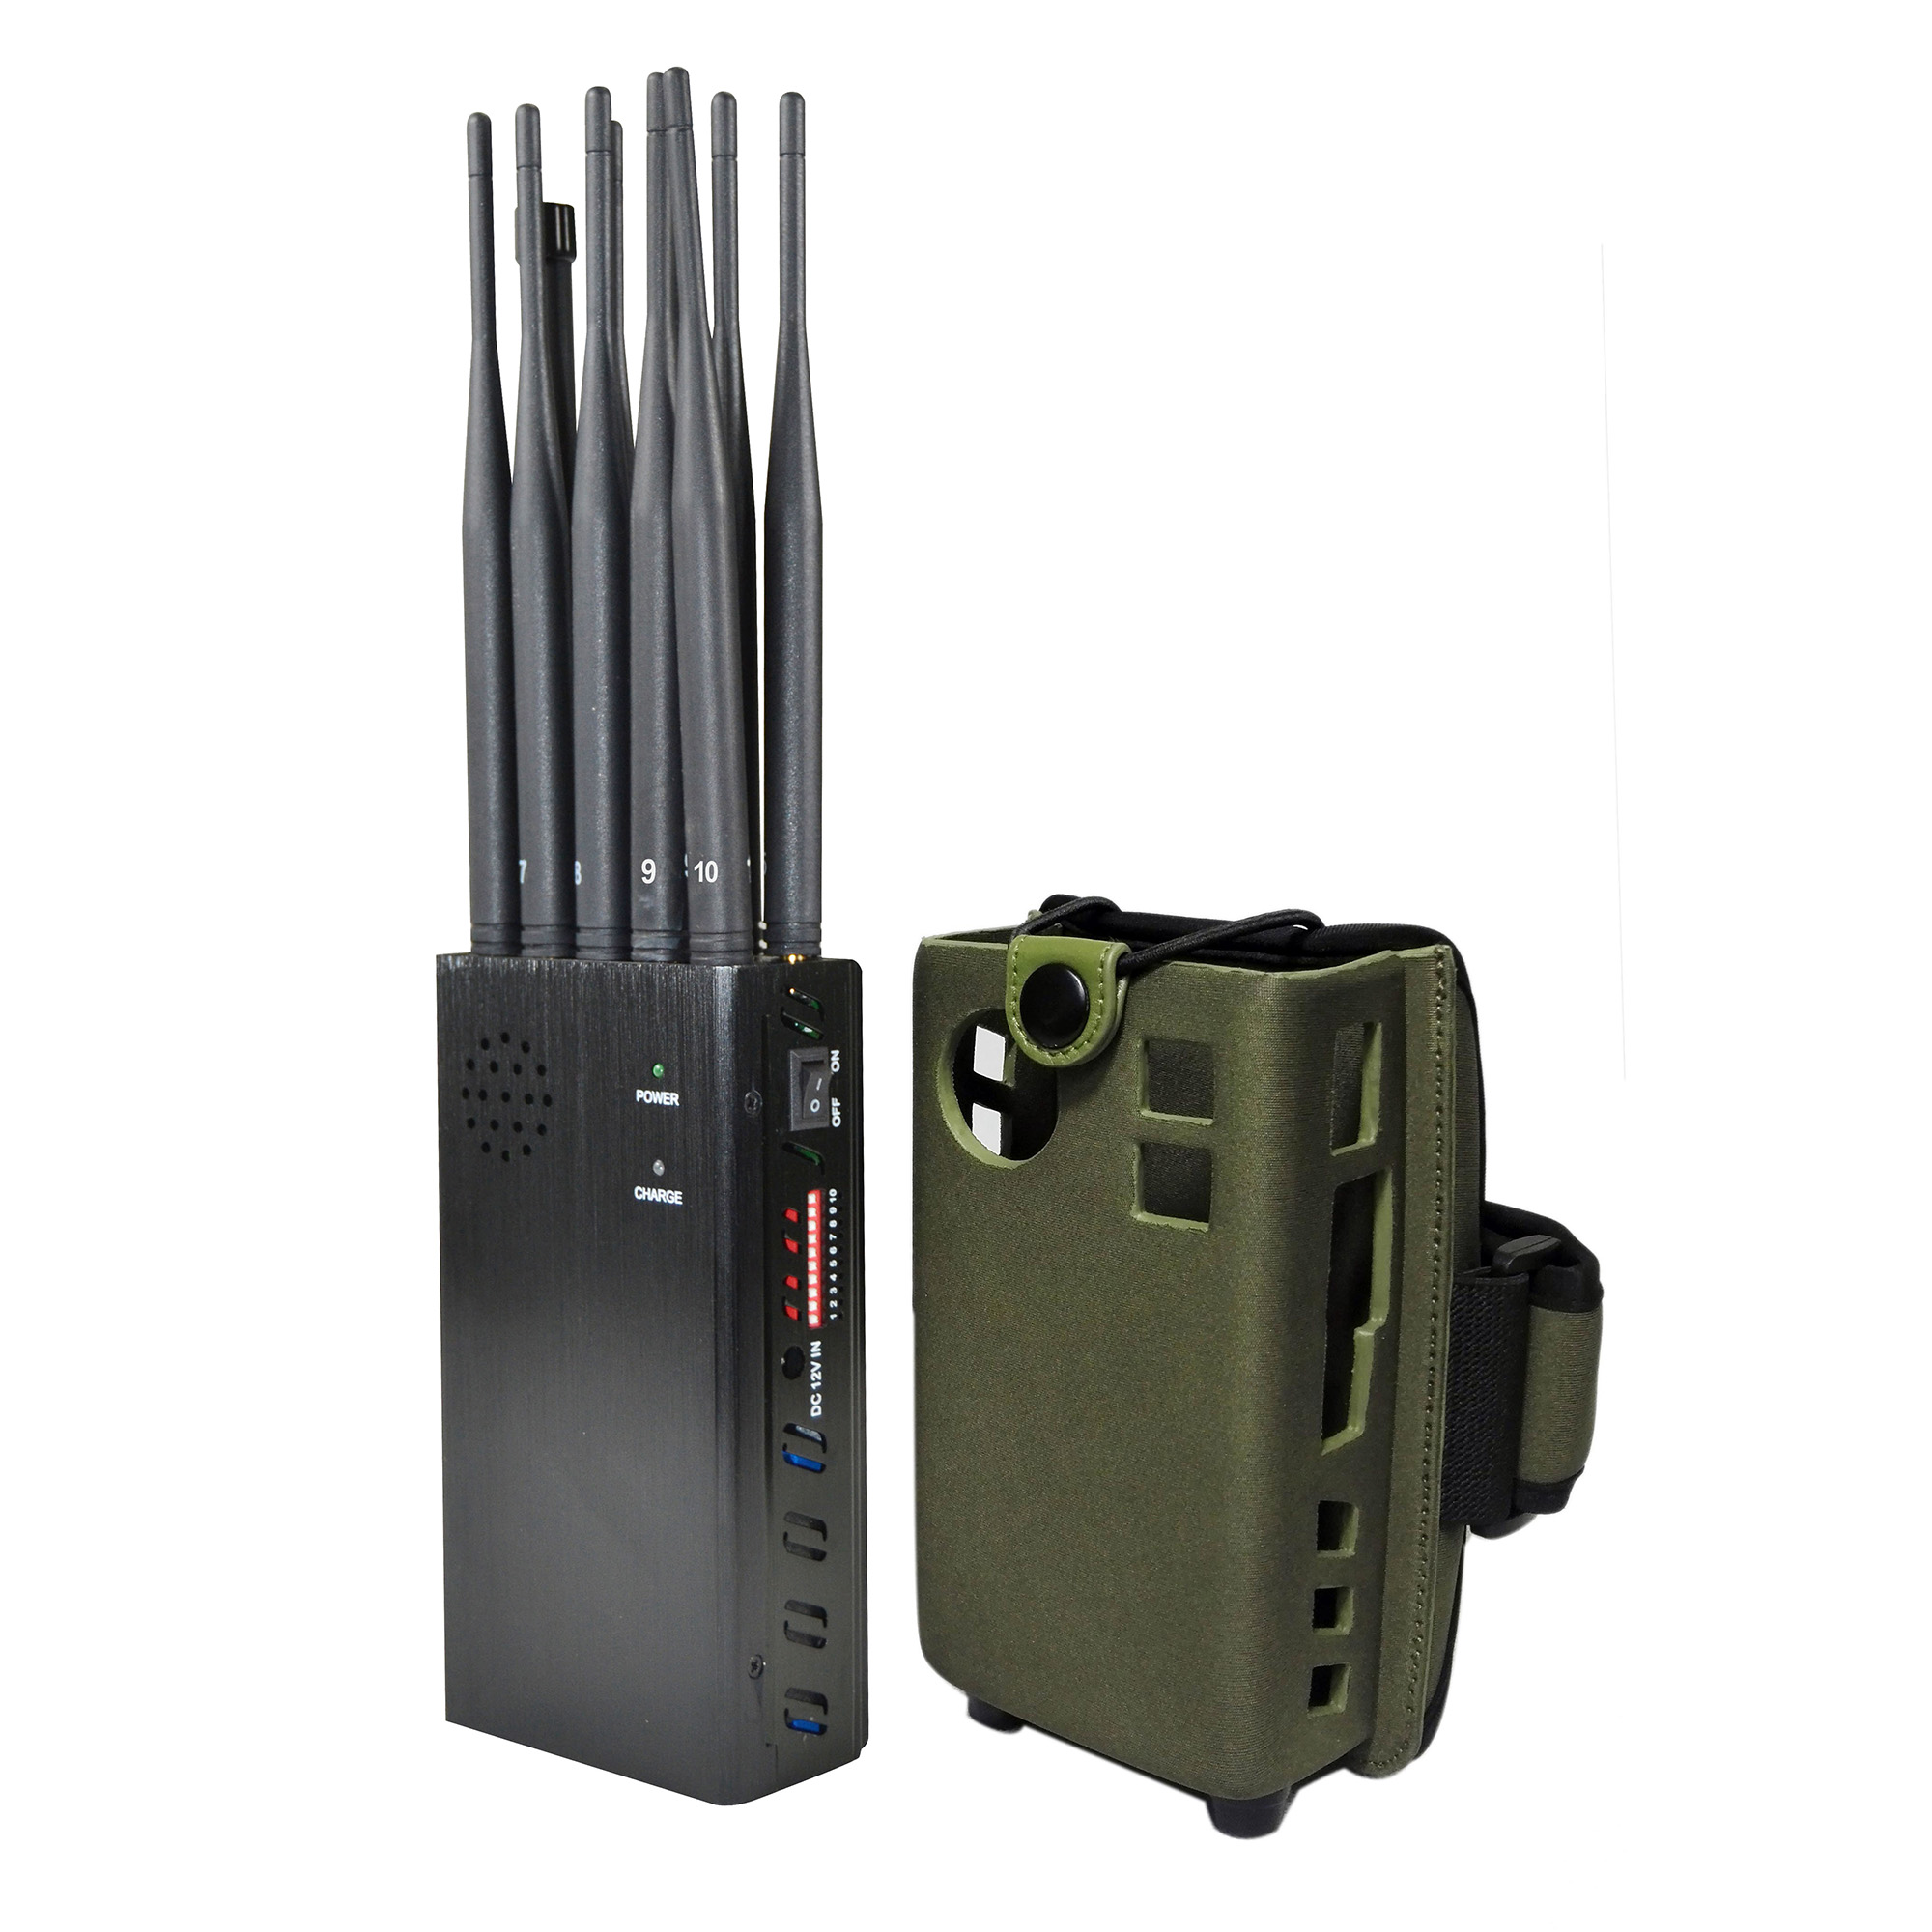 Cell phone signal jammer for cars | Hidden Vehicle Cigarette Lighter GPS Jammer Anti-Tracker GPS Blocker